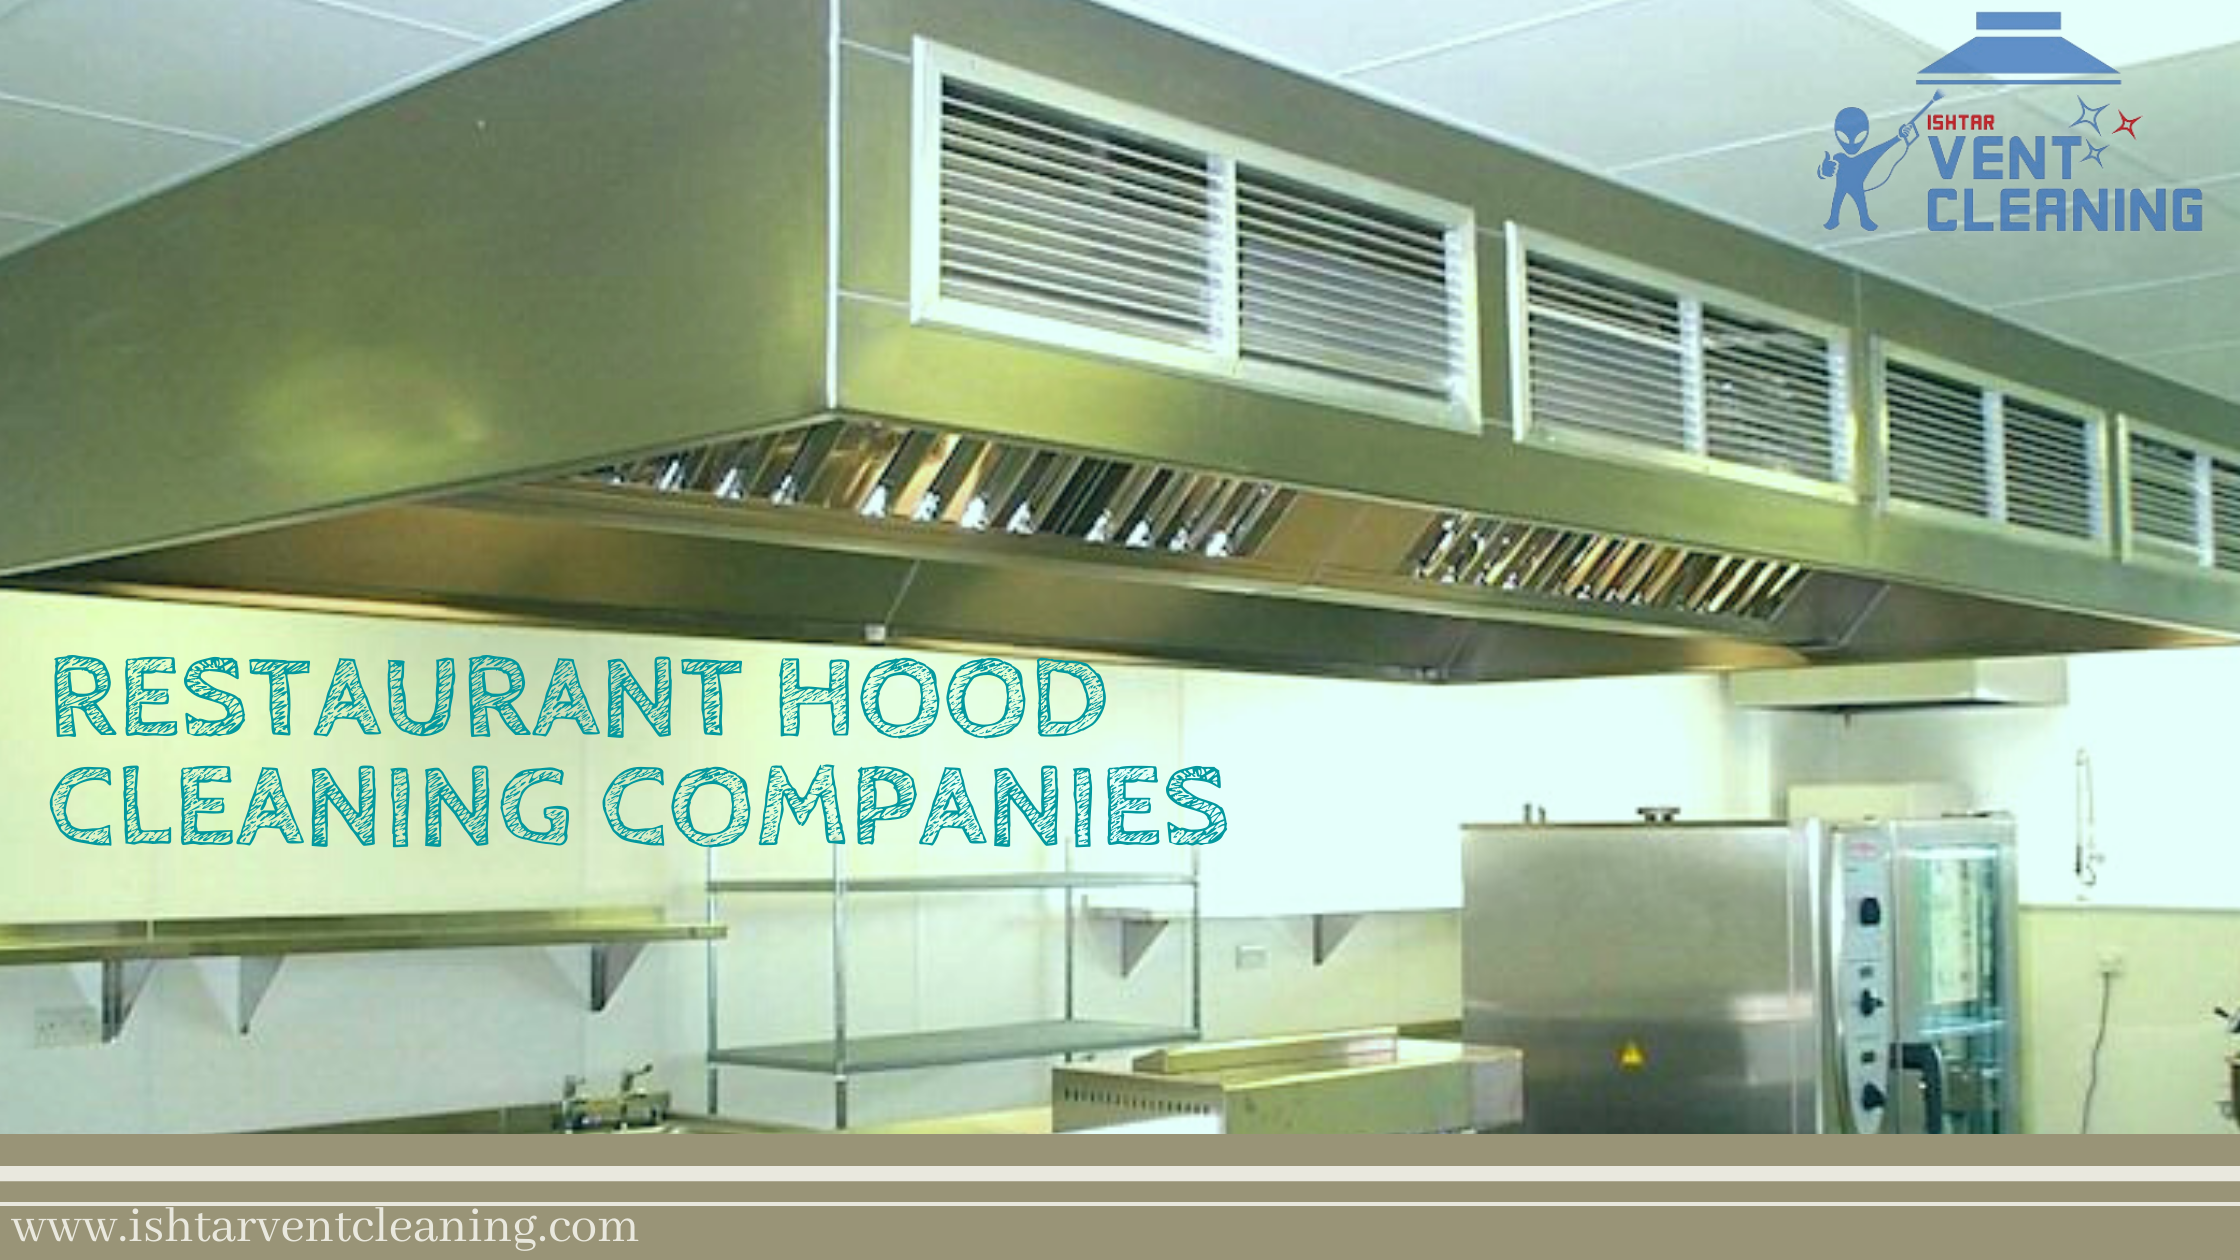 Why choose a professional Restaurant hood cleaning company